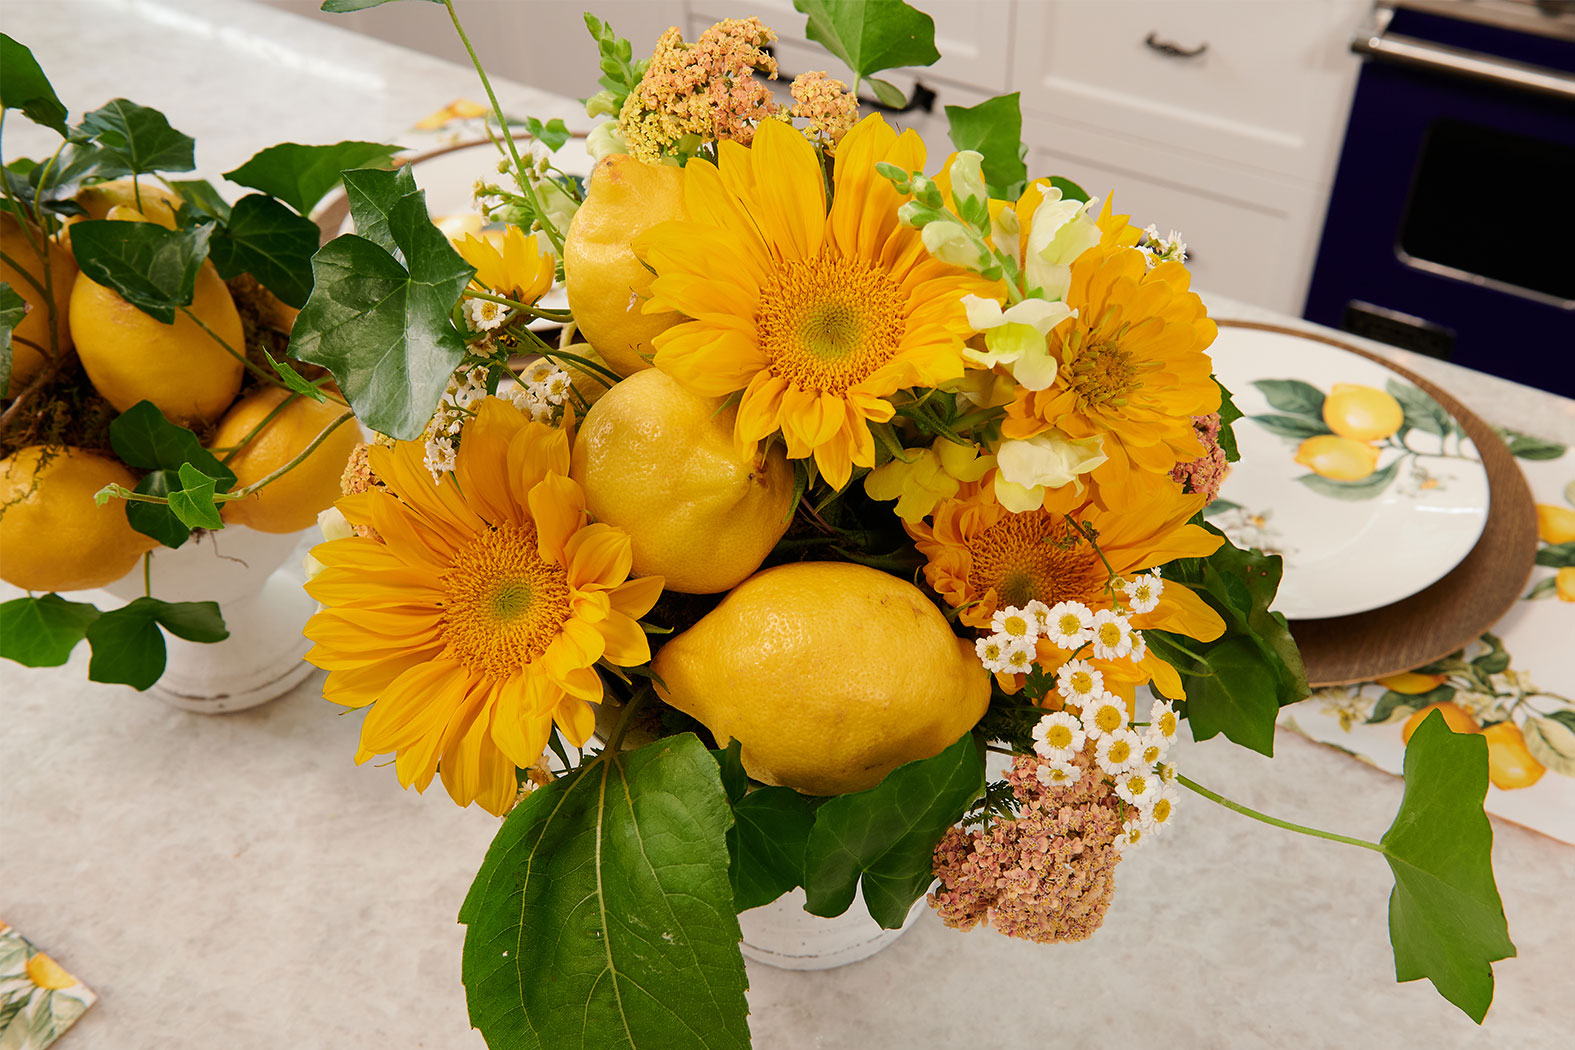 """Flower Arrangements inspired by Italy- feature Sunflowers, Fresh Lemons, Chamomile, and Cottage yarrow- to complete this inspired table setting on """"J Schwanke's Life in Bloom""""."""